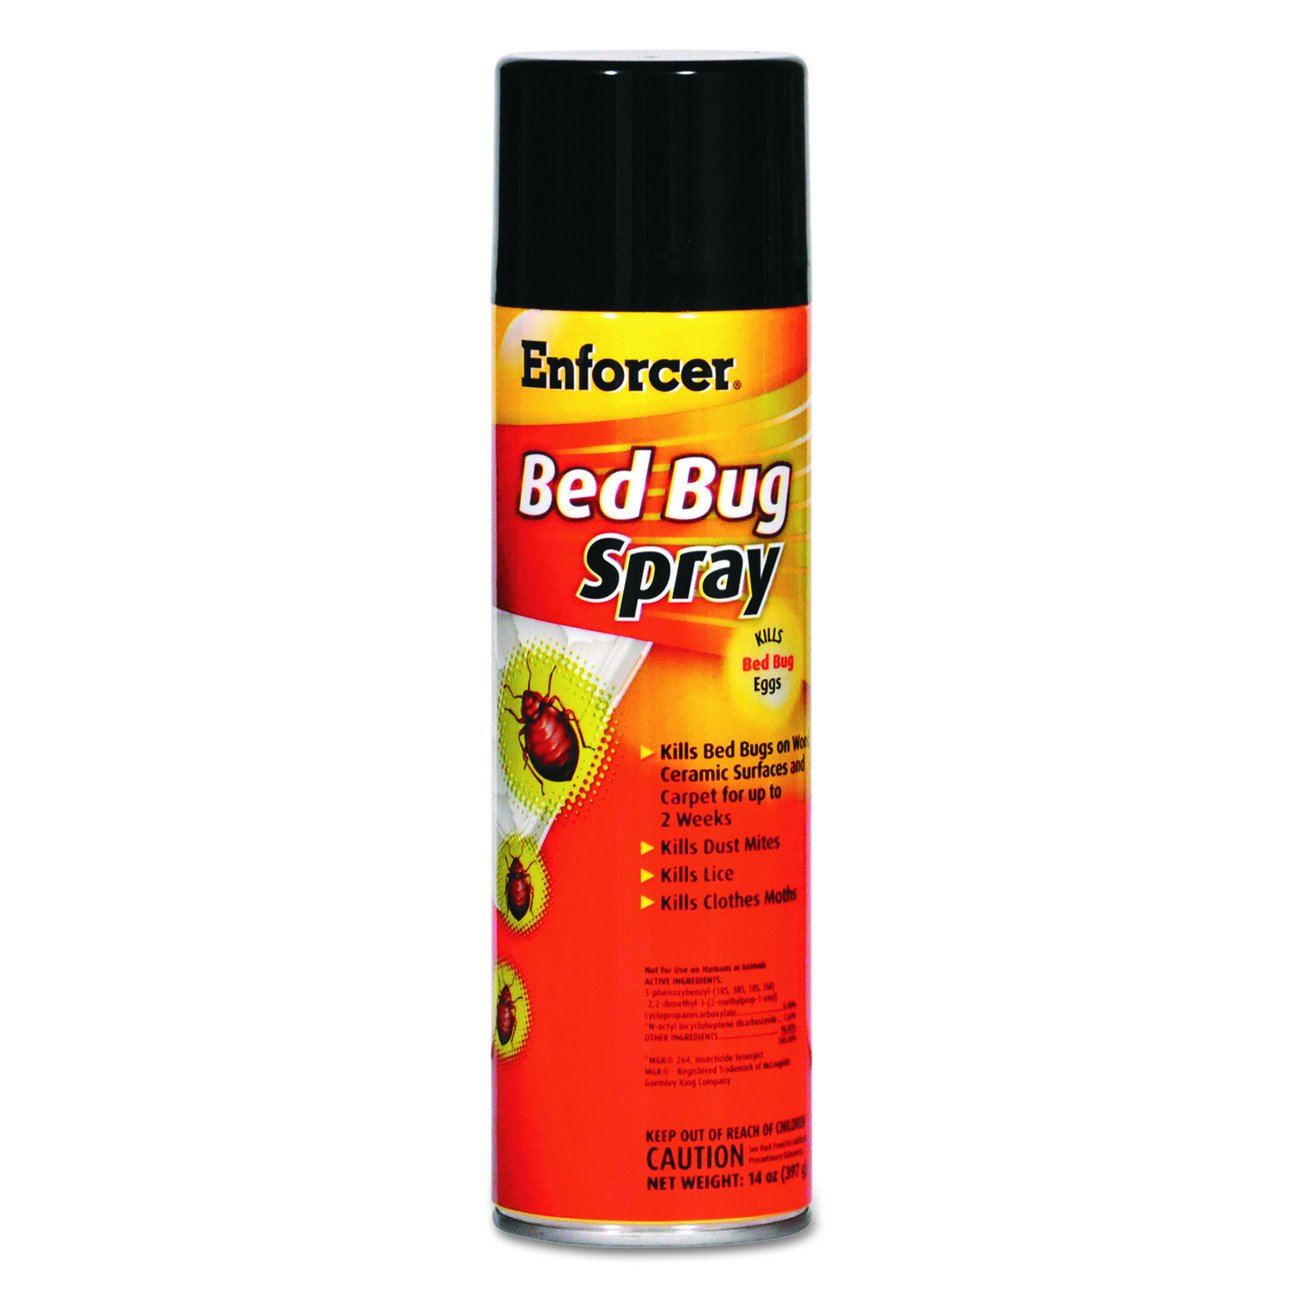 Enforcer 1043287 Bed Bug Spray for Bed BUGS/Dust Mites/Lice/Moths, 14 oz Aerosol, 14 Ounces, 1'' Height, 1'' width (Pack of 12) by Enforcer (Image #3)